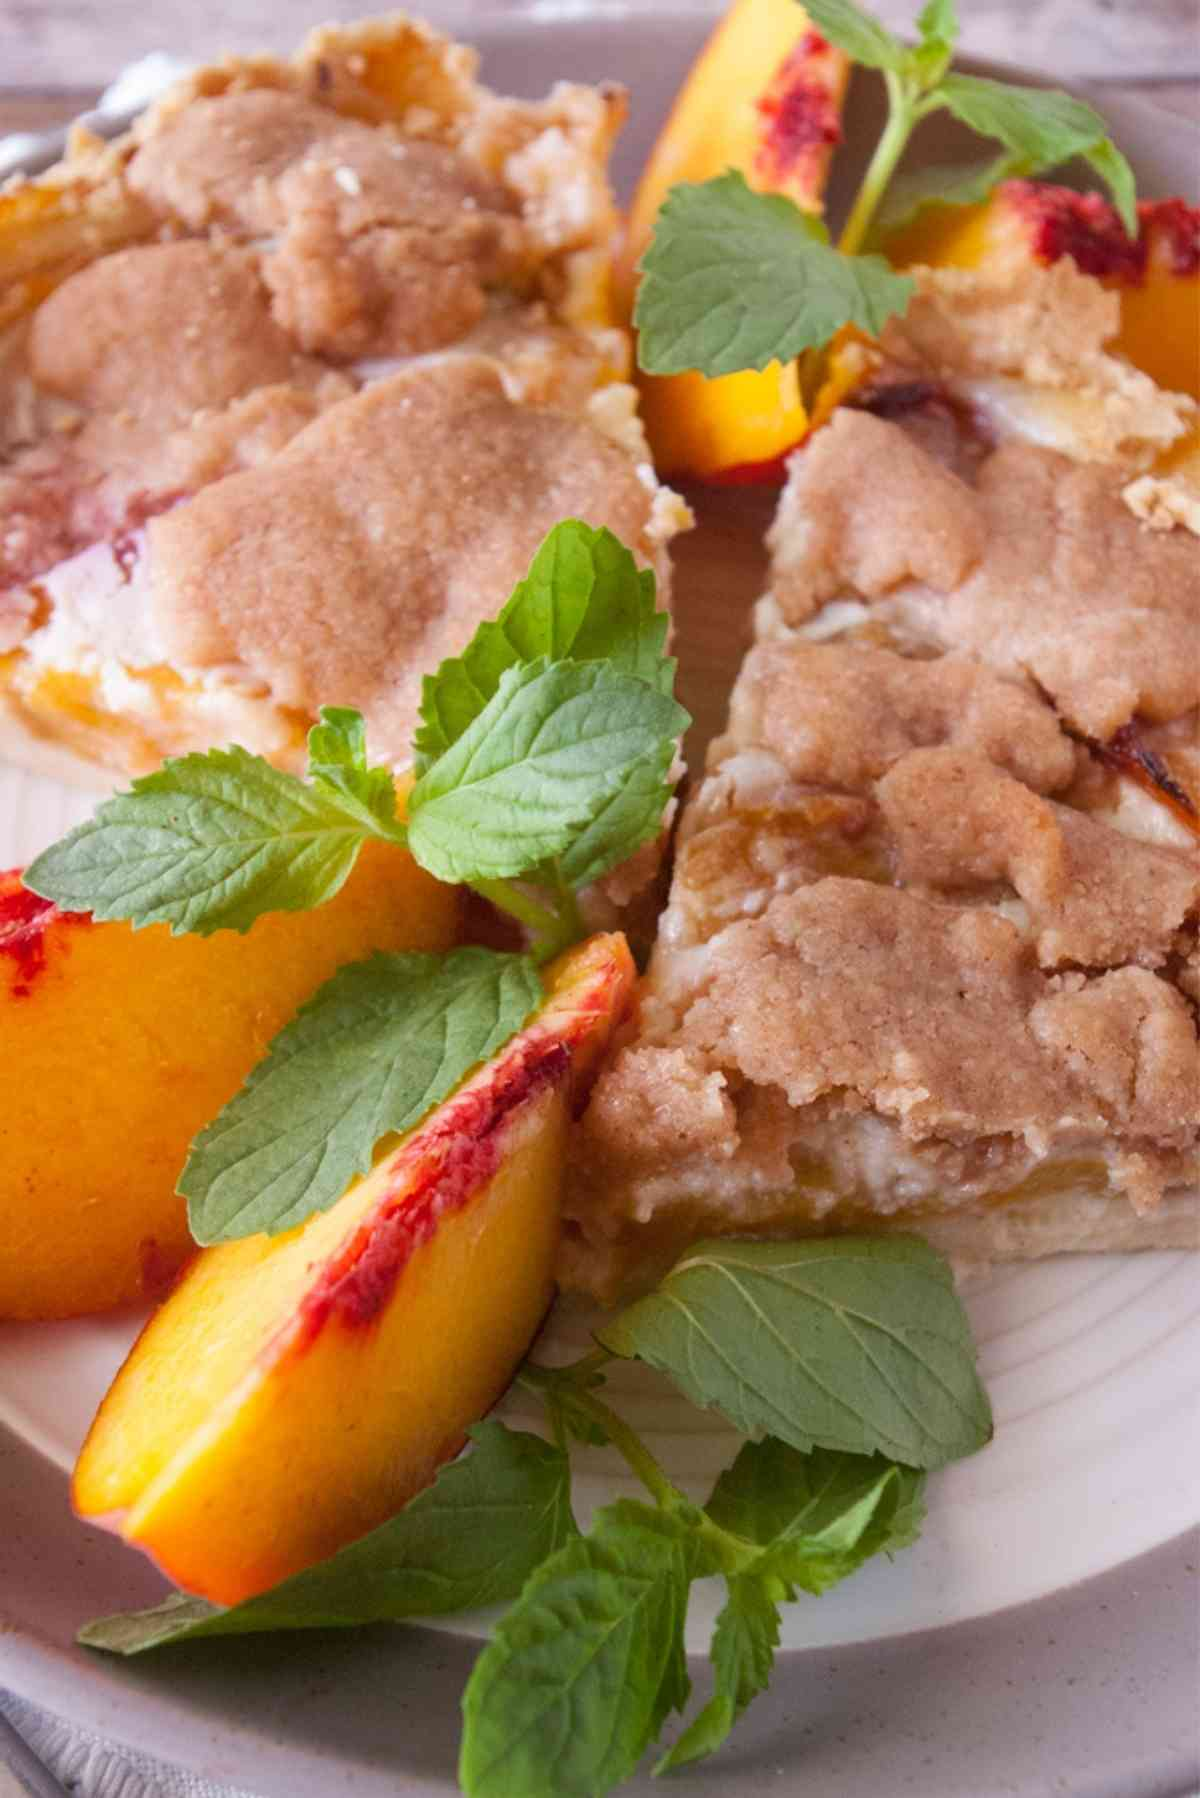 Slices of fresh peach pie topped with a streusel crumb topping garnished with fresh peaches and mint.